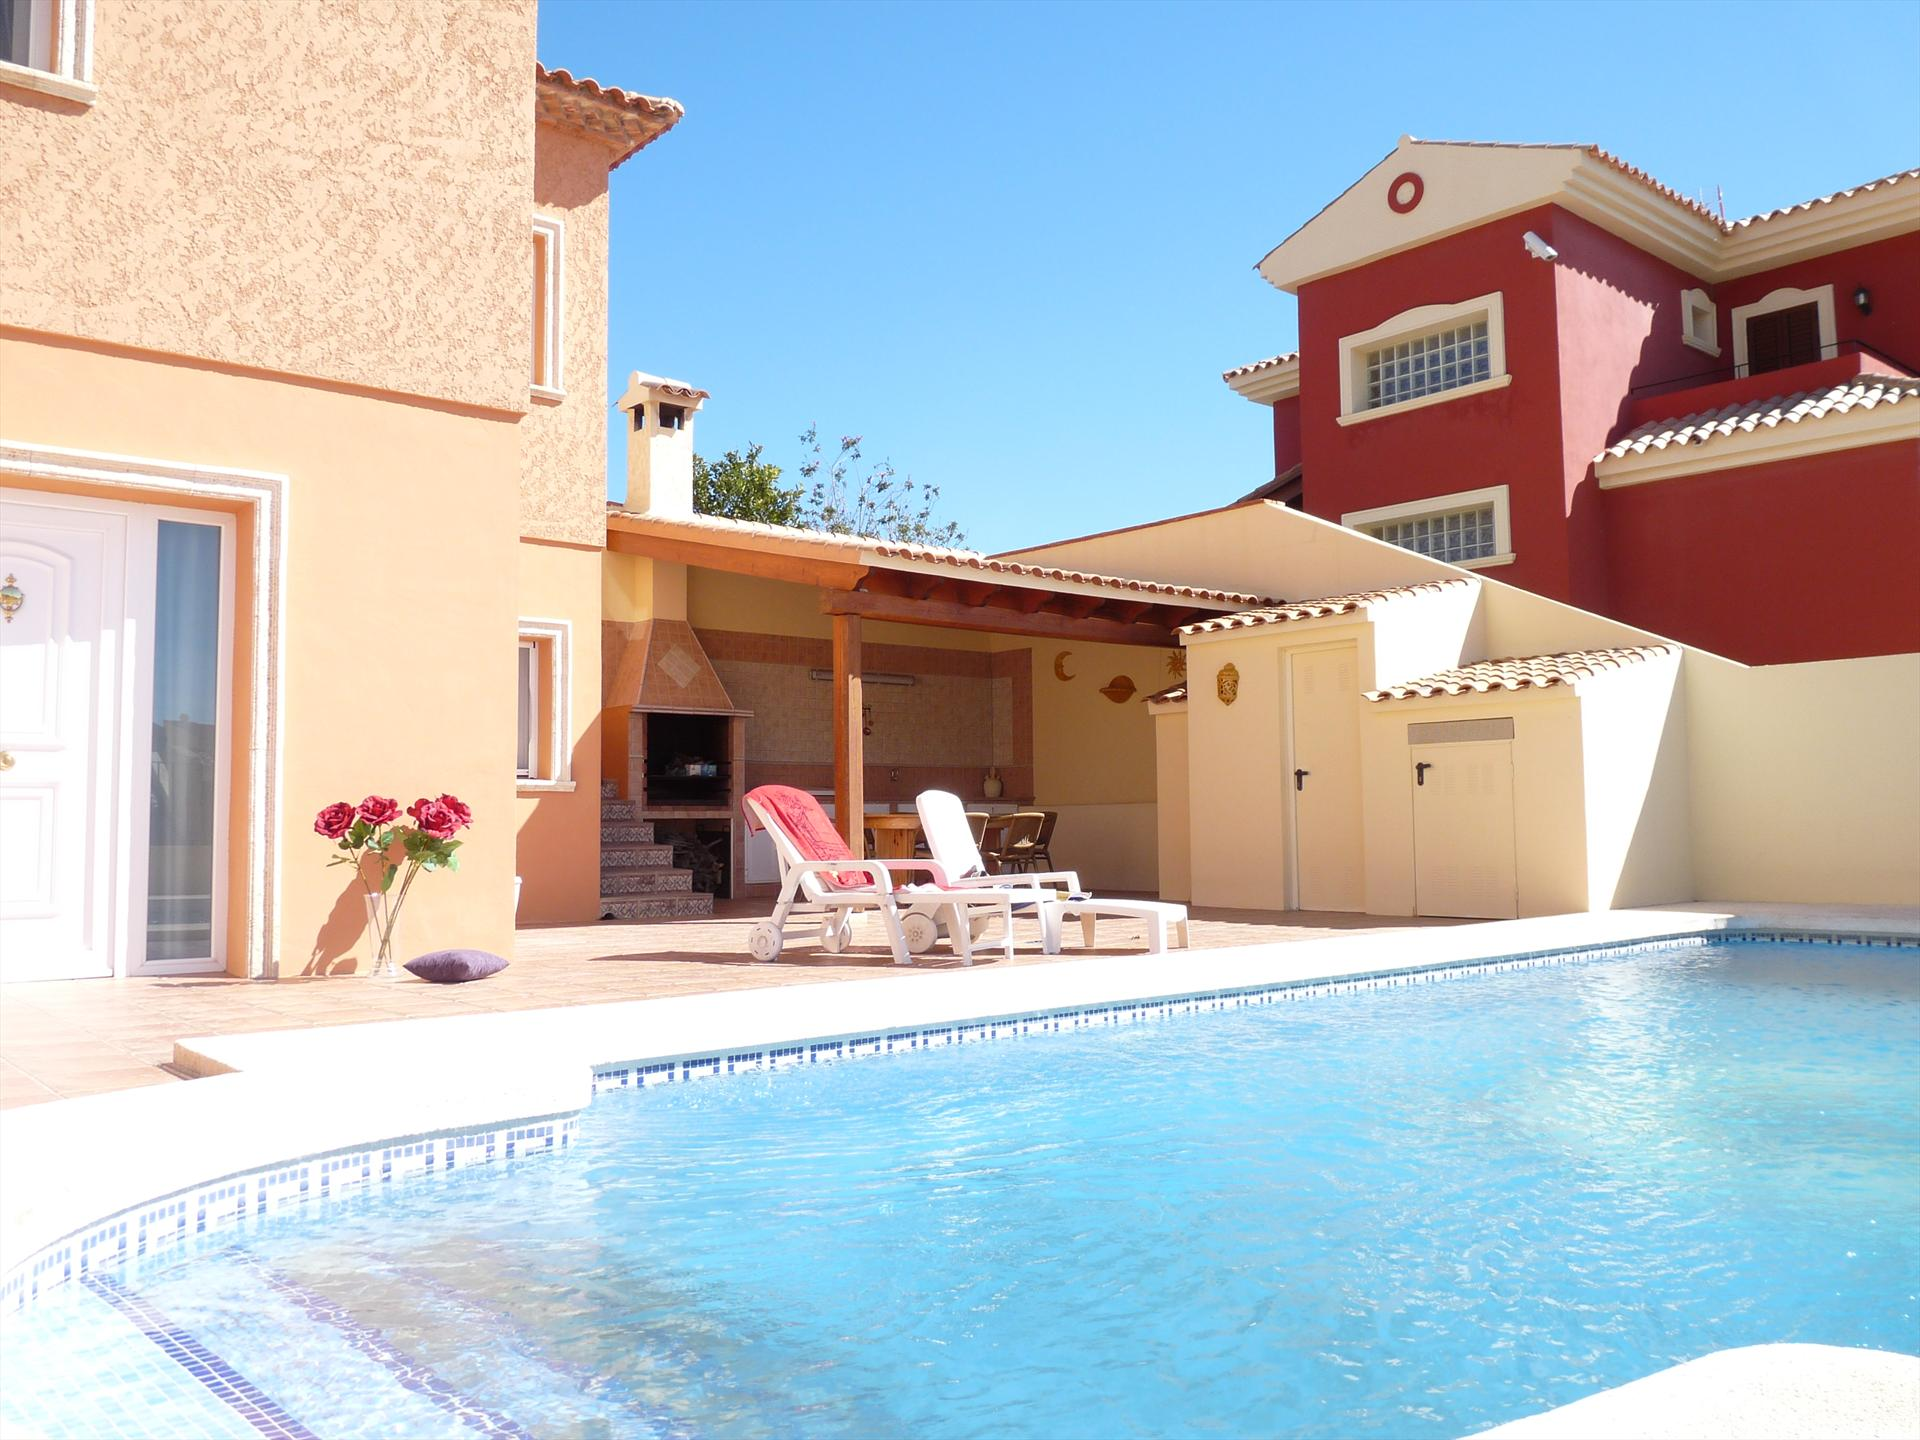 Apartamento Marinette, Beautiful apartment  with private pool in La Nucia, on the Costa Blanca, Spain for 4 persons.....